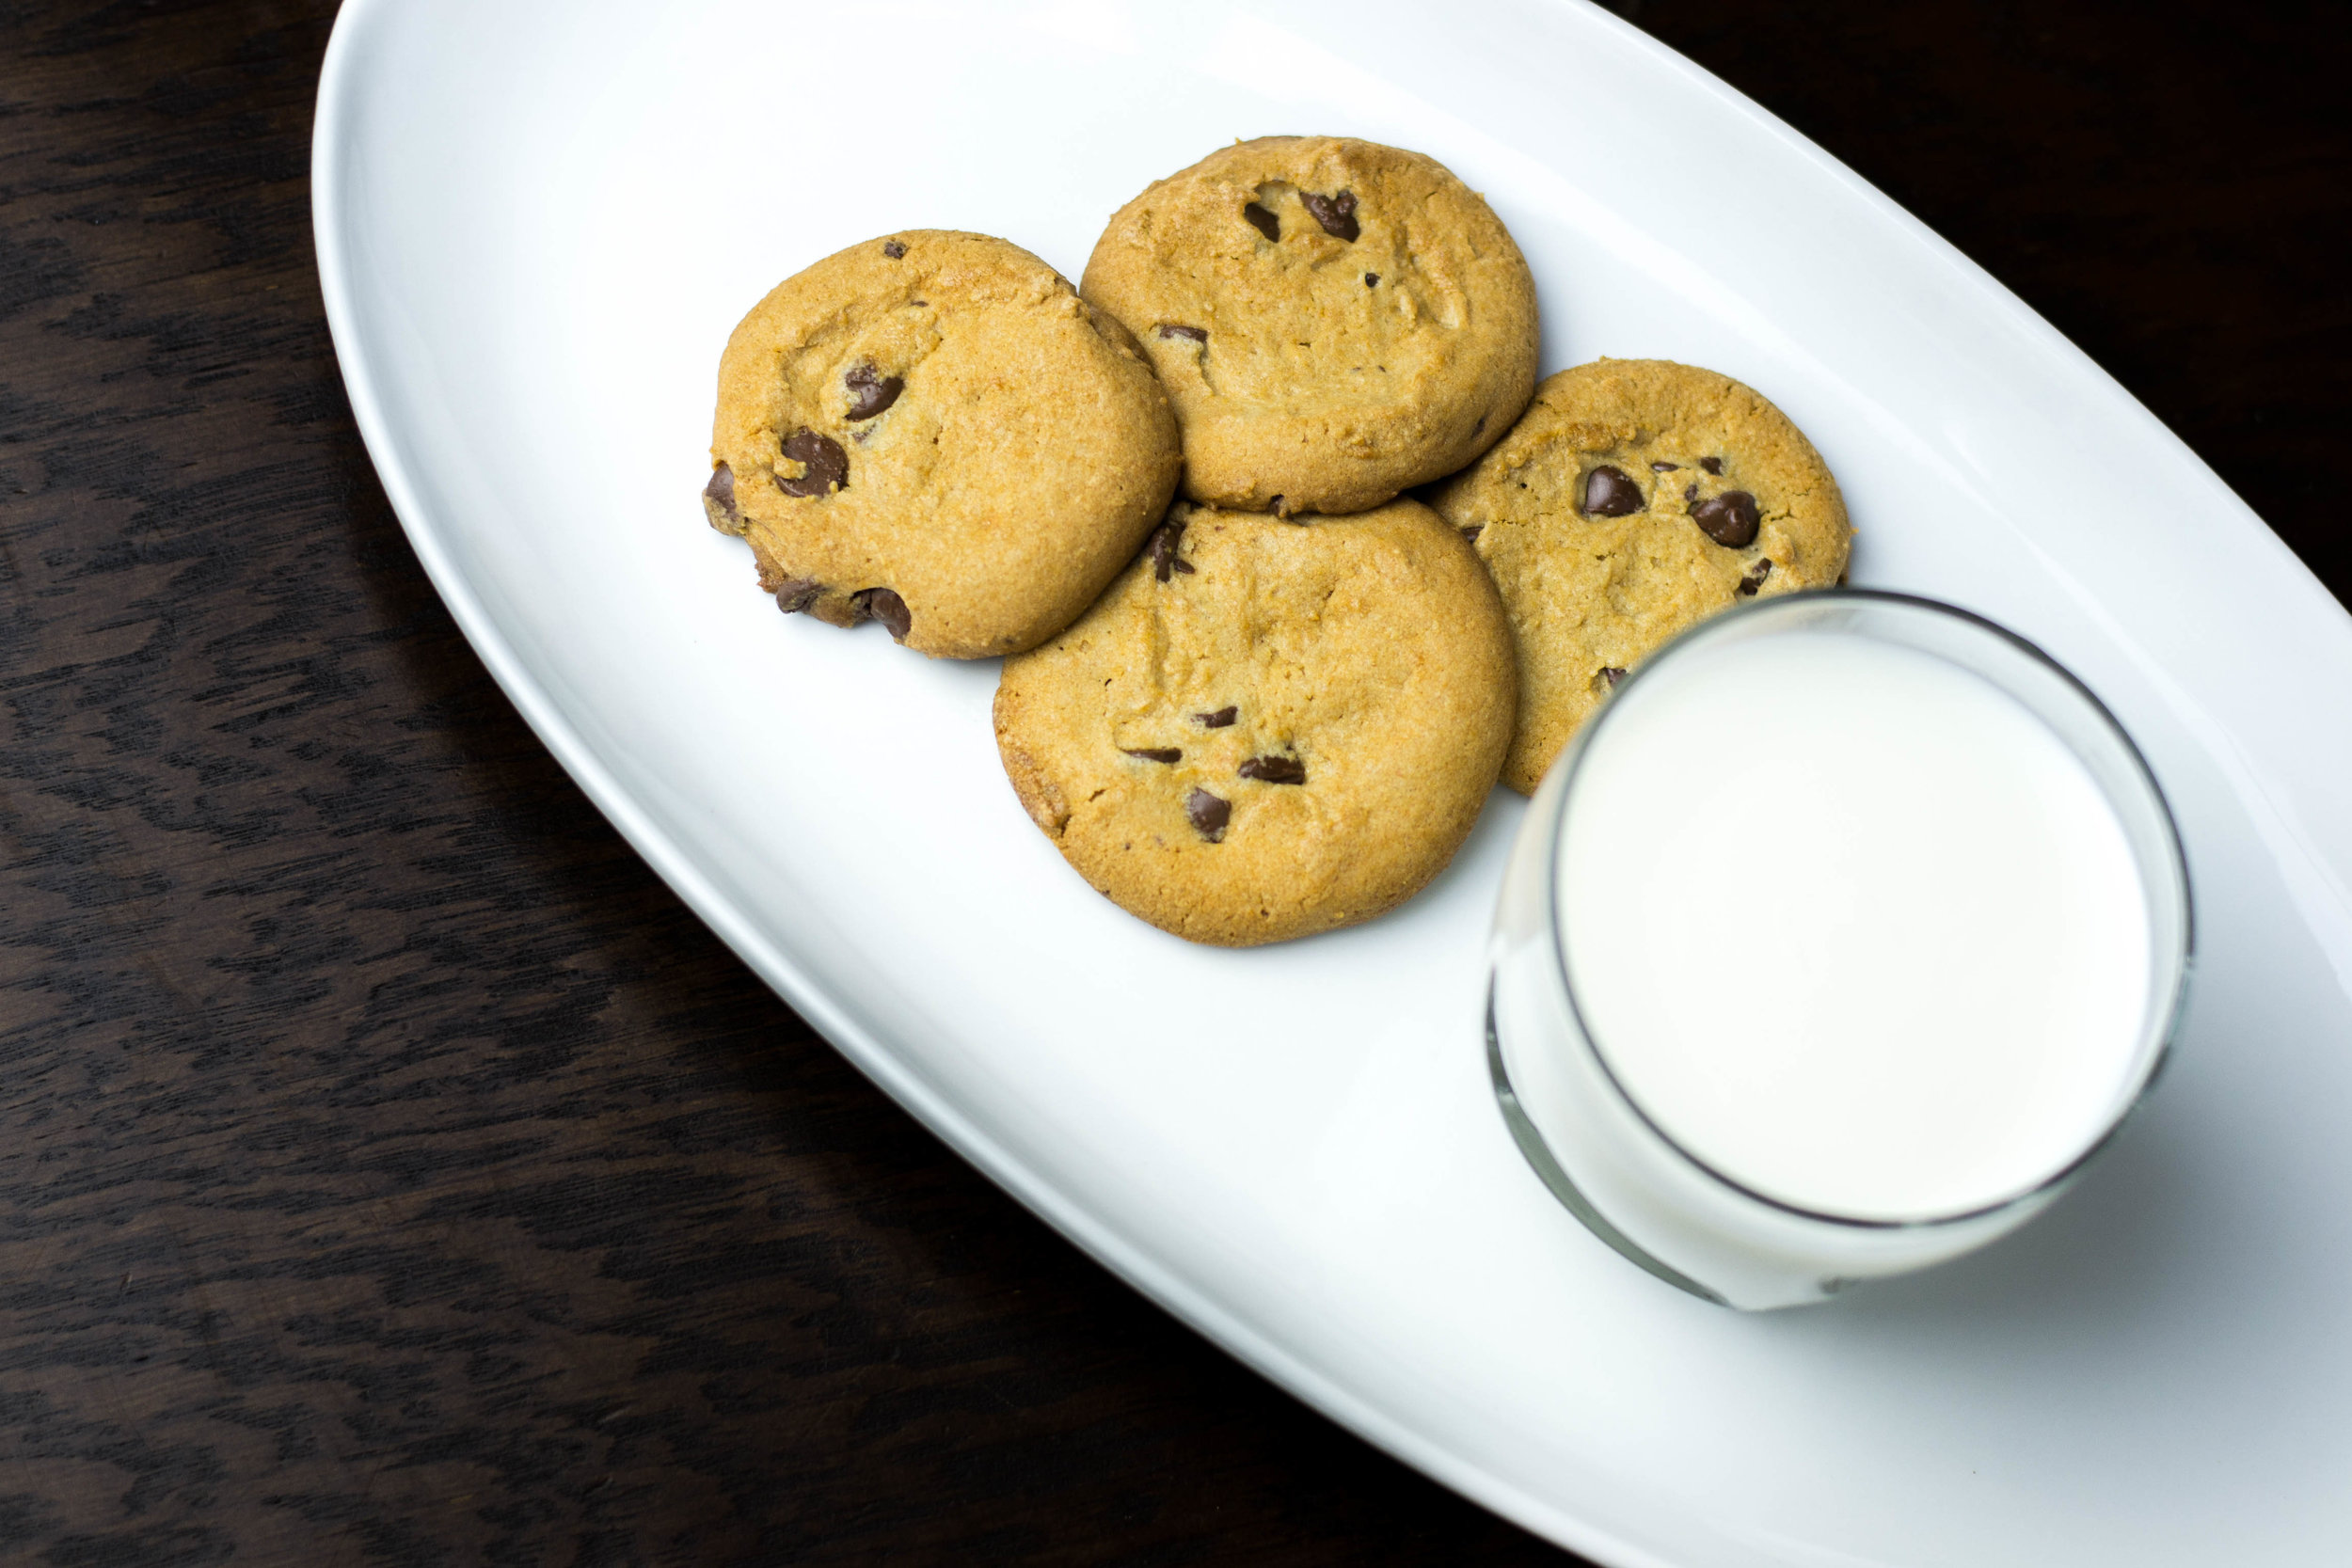 Schwan's cookies with a glass of milk